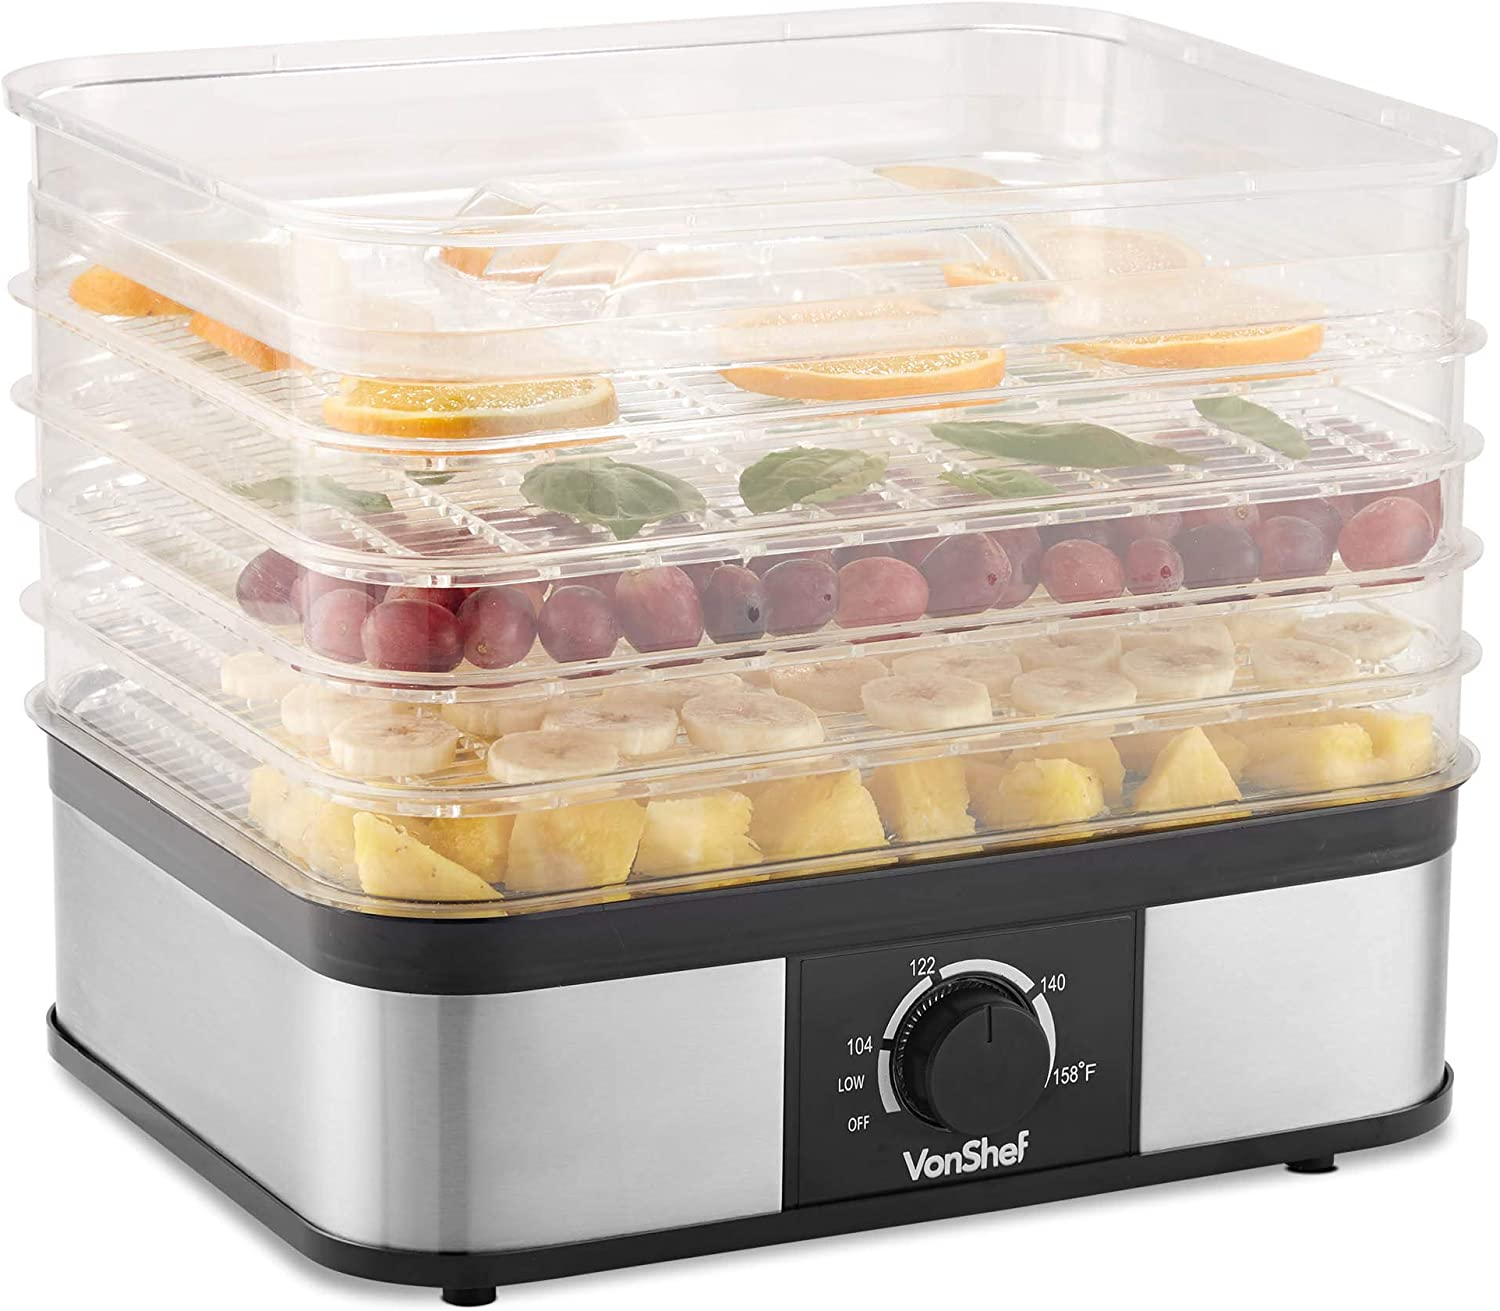 VonShef Dehydrator 5 Tray Food Machine Stainless Steel for Beef Jerky, Vegetables, Fruit & Dog Snacks 250W